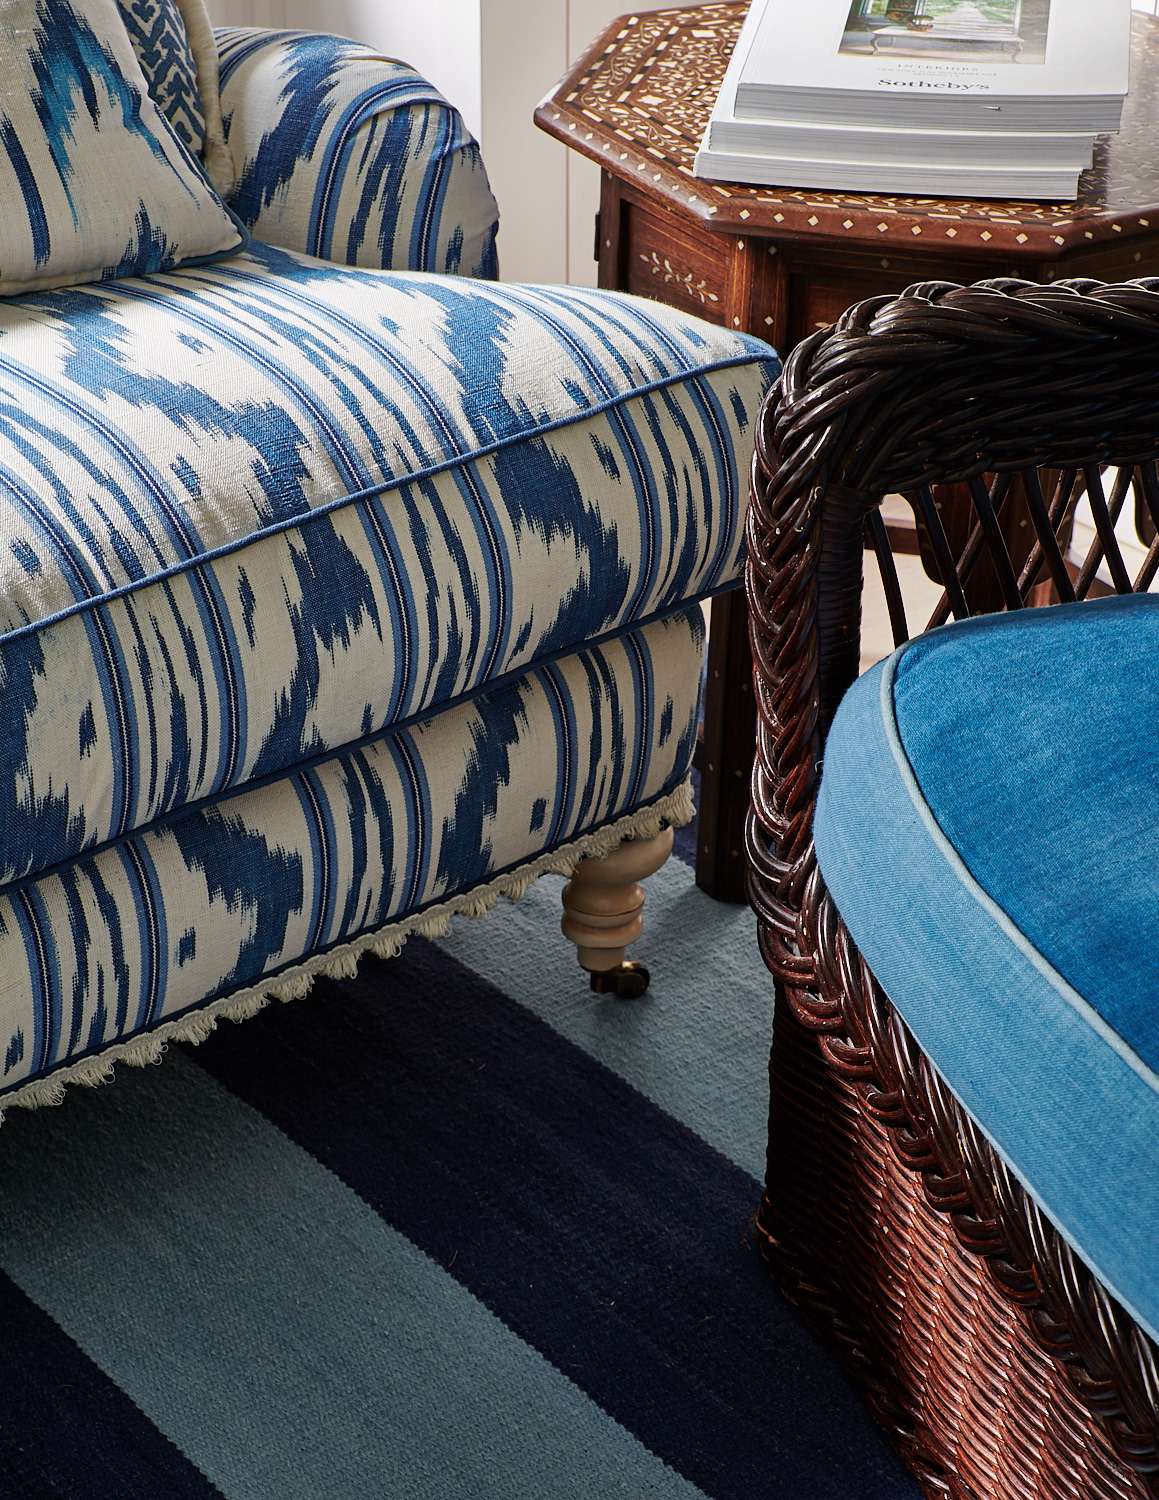 Detail of patterned sofa with petite tassels